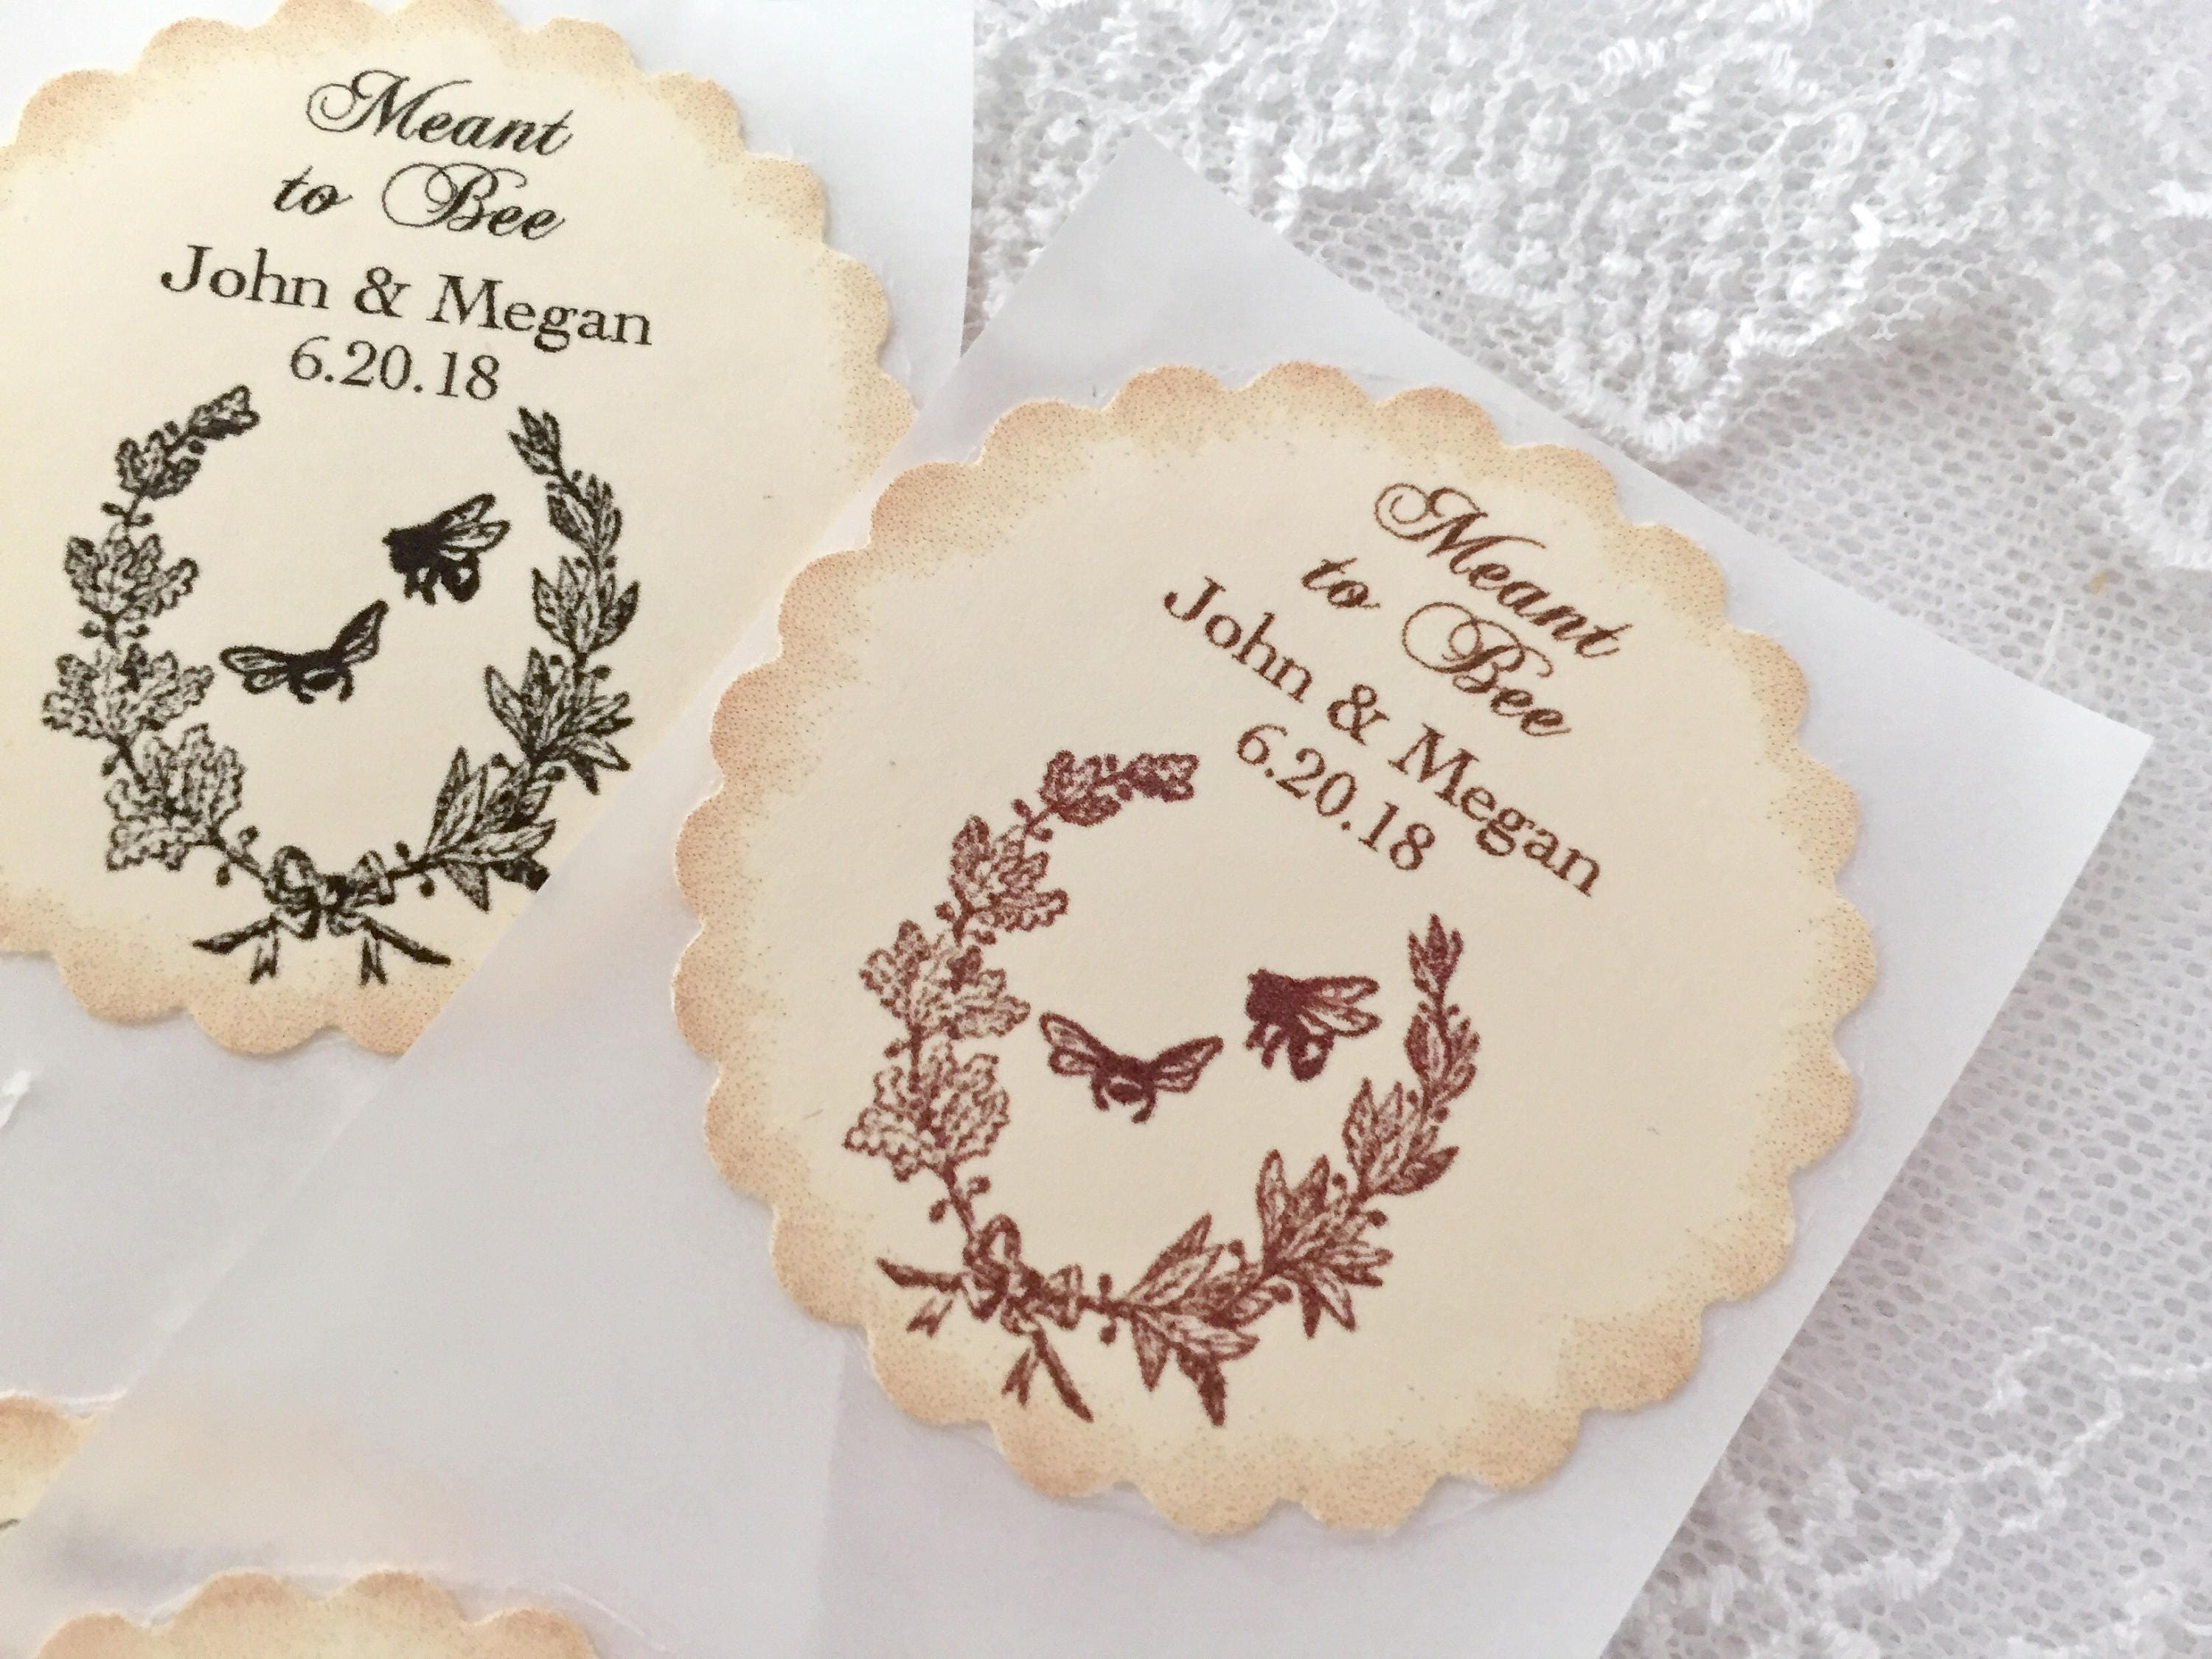 Meant to Bee Stickers Bee Favor Stickers Honey Wedding